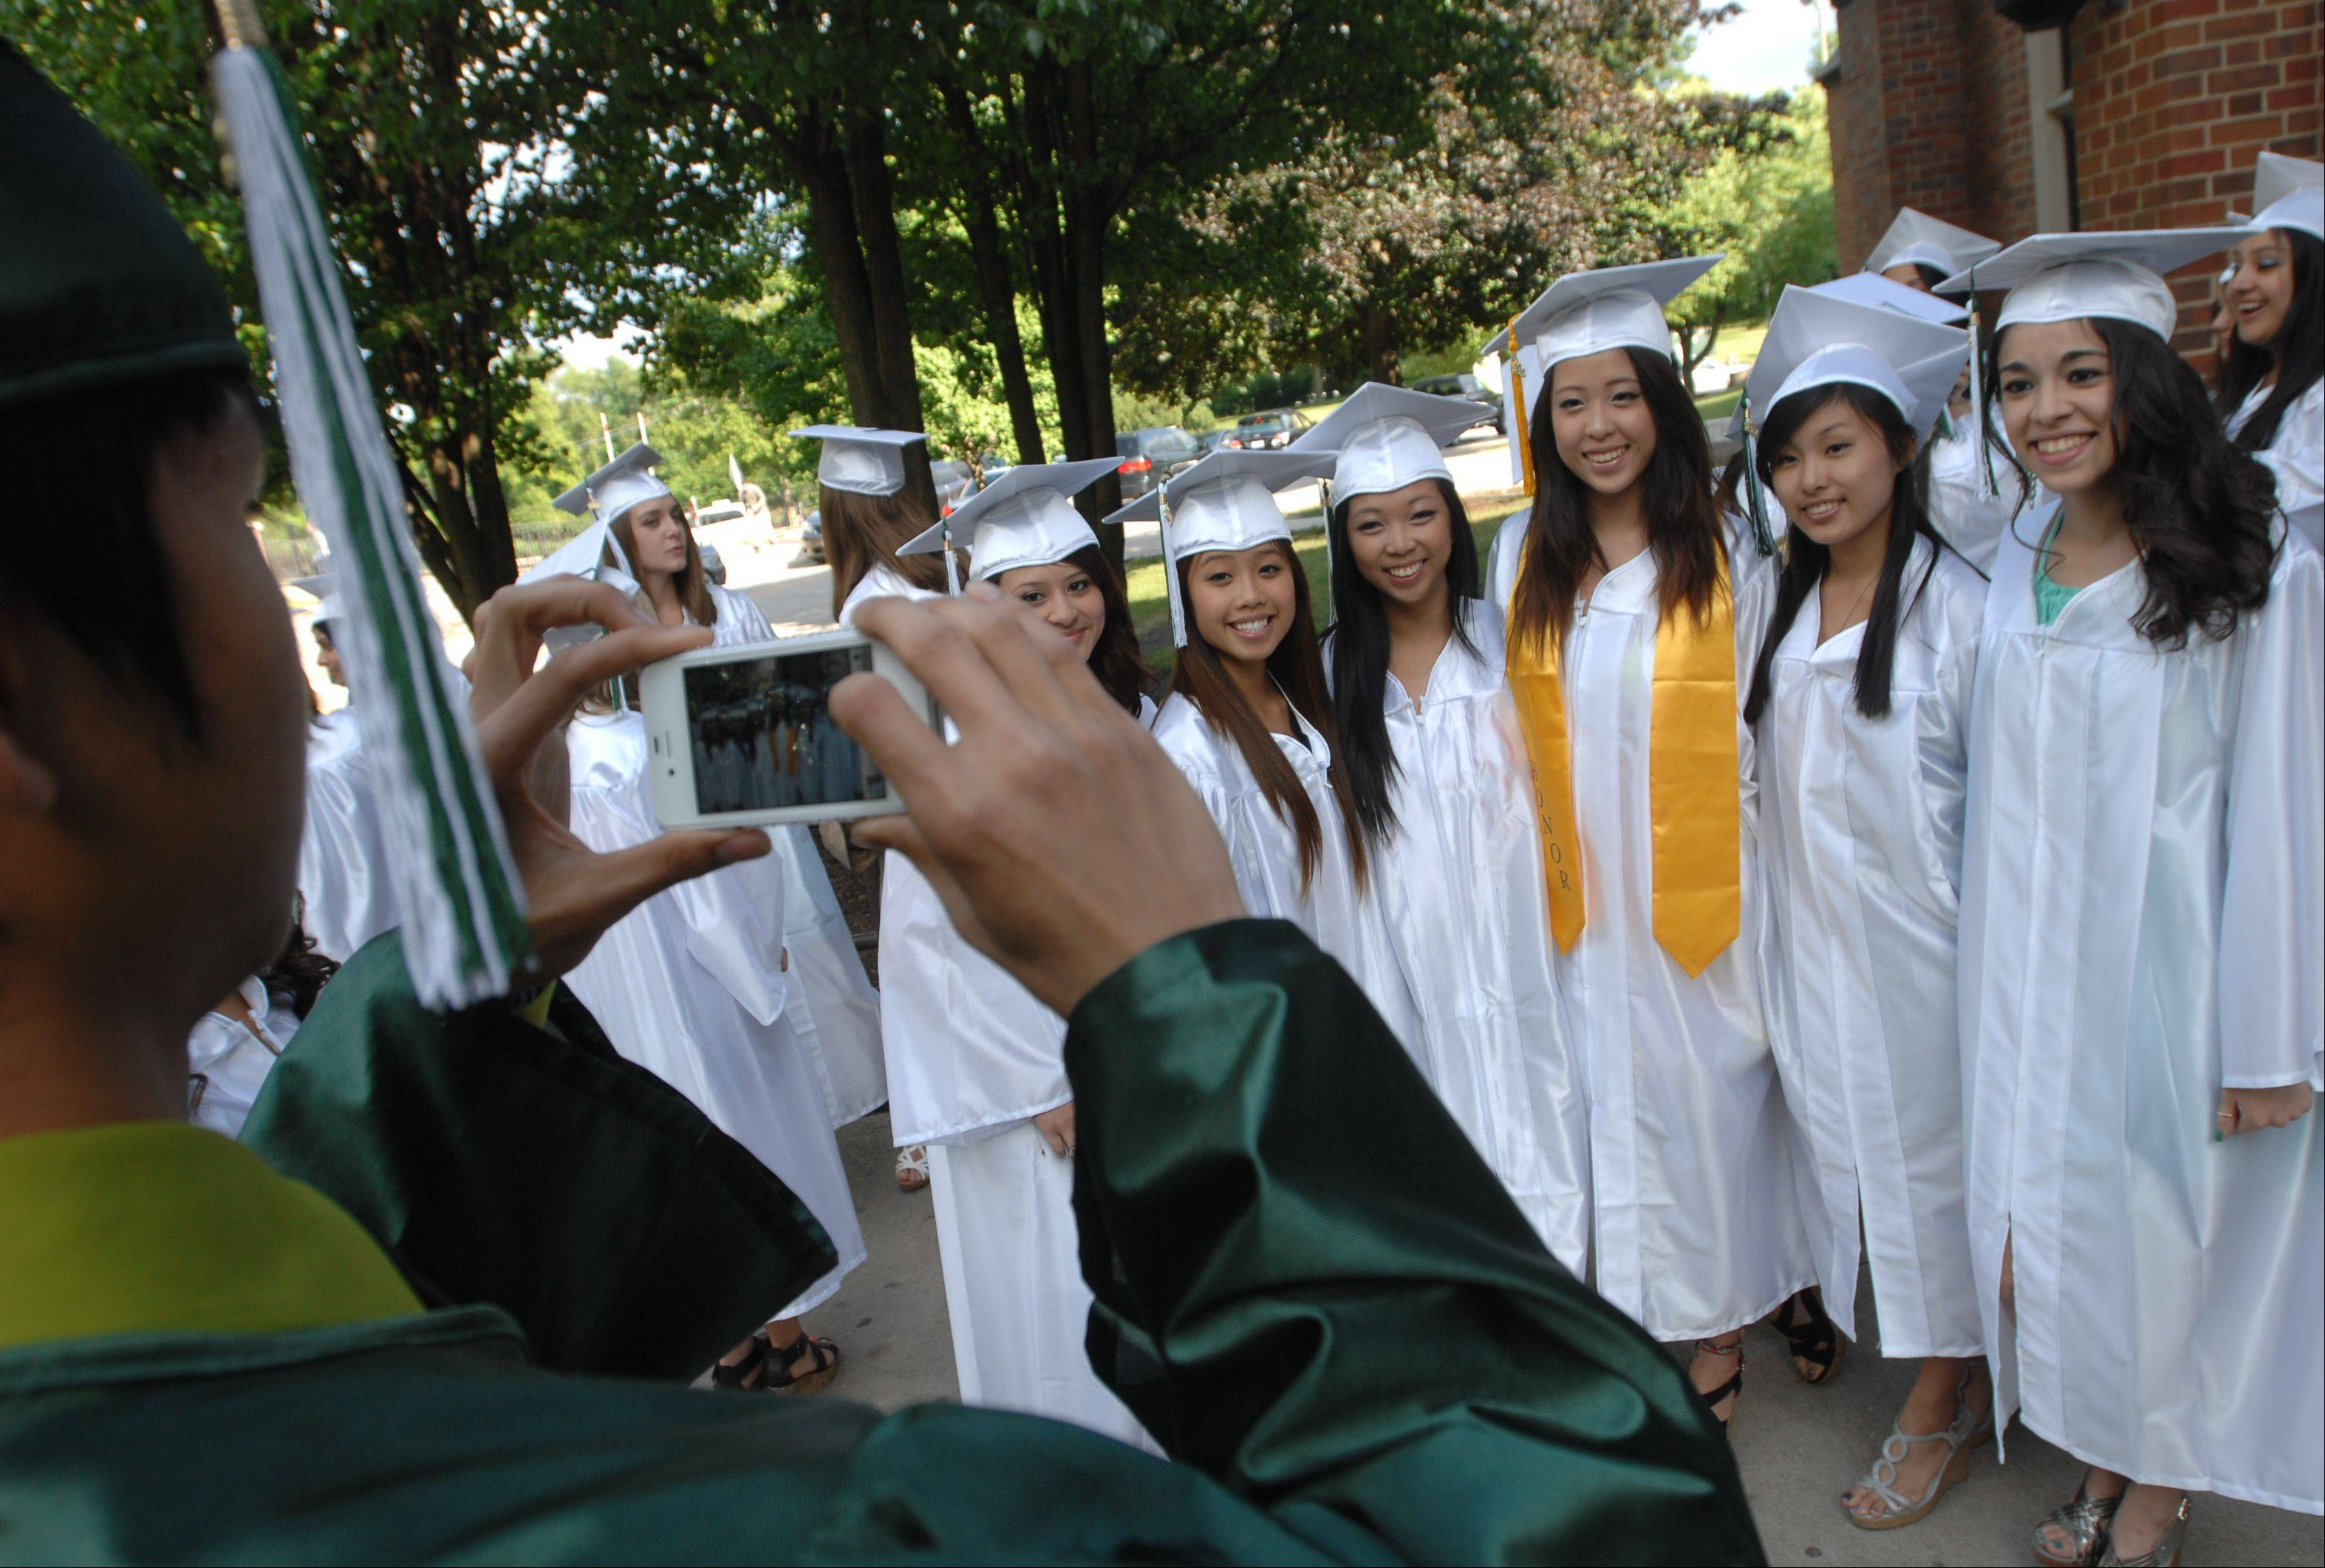 Glenbard West High School held its graduation ceremony Friday at Glenbard West in Glen Ellyn.